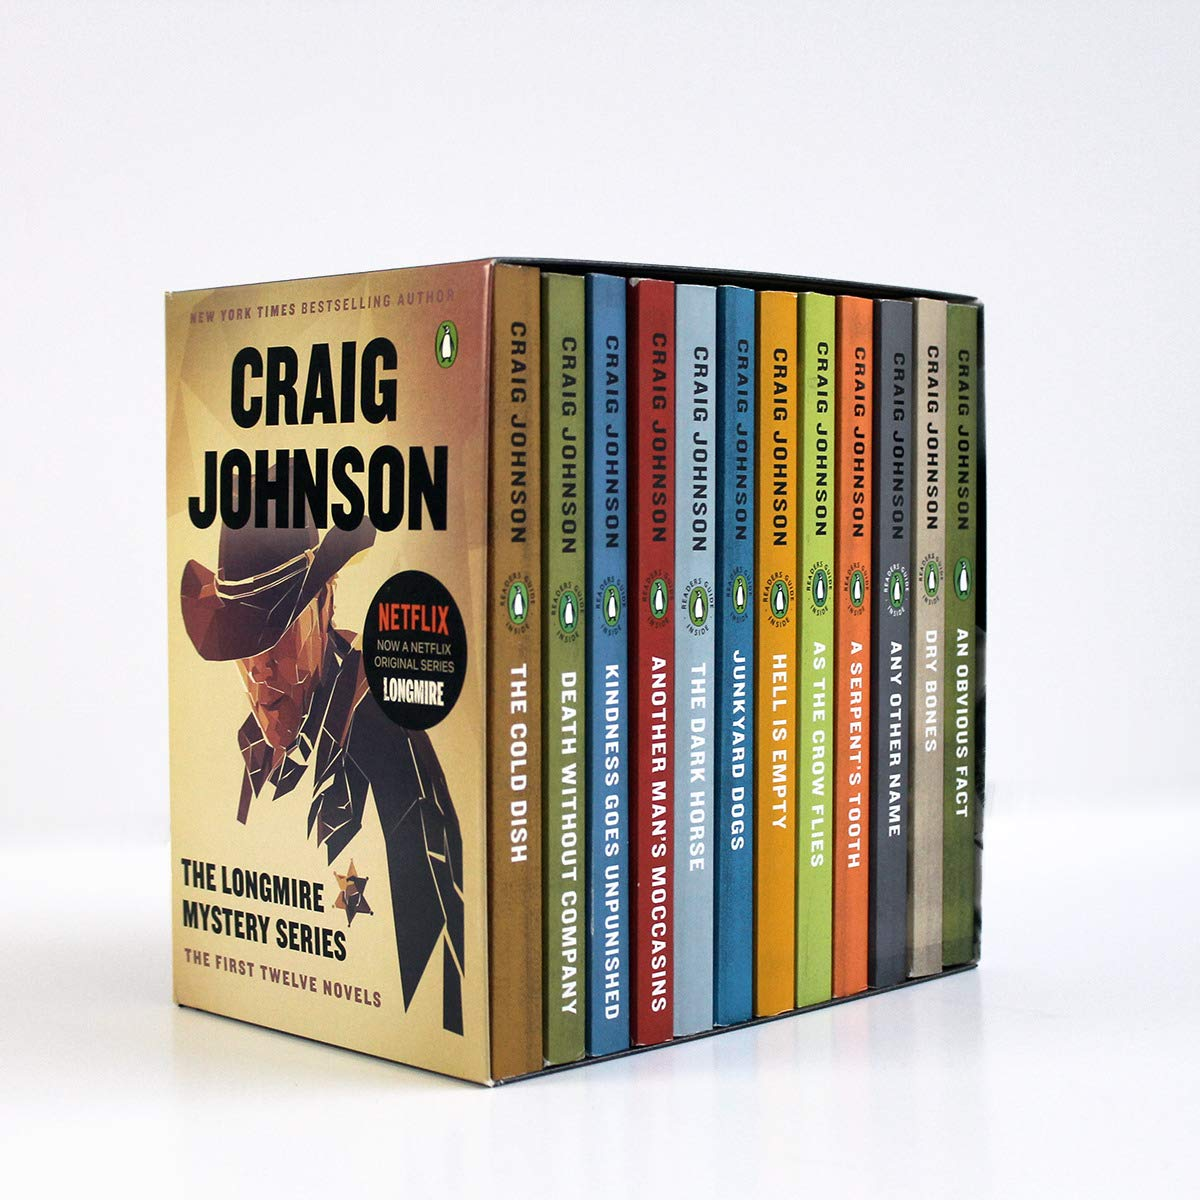 The Longmire Mystery Series Boxed Set Volumes 1-12: The First Twelve Novels (A Longmire Mystery) by Penguin Books